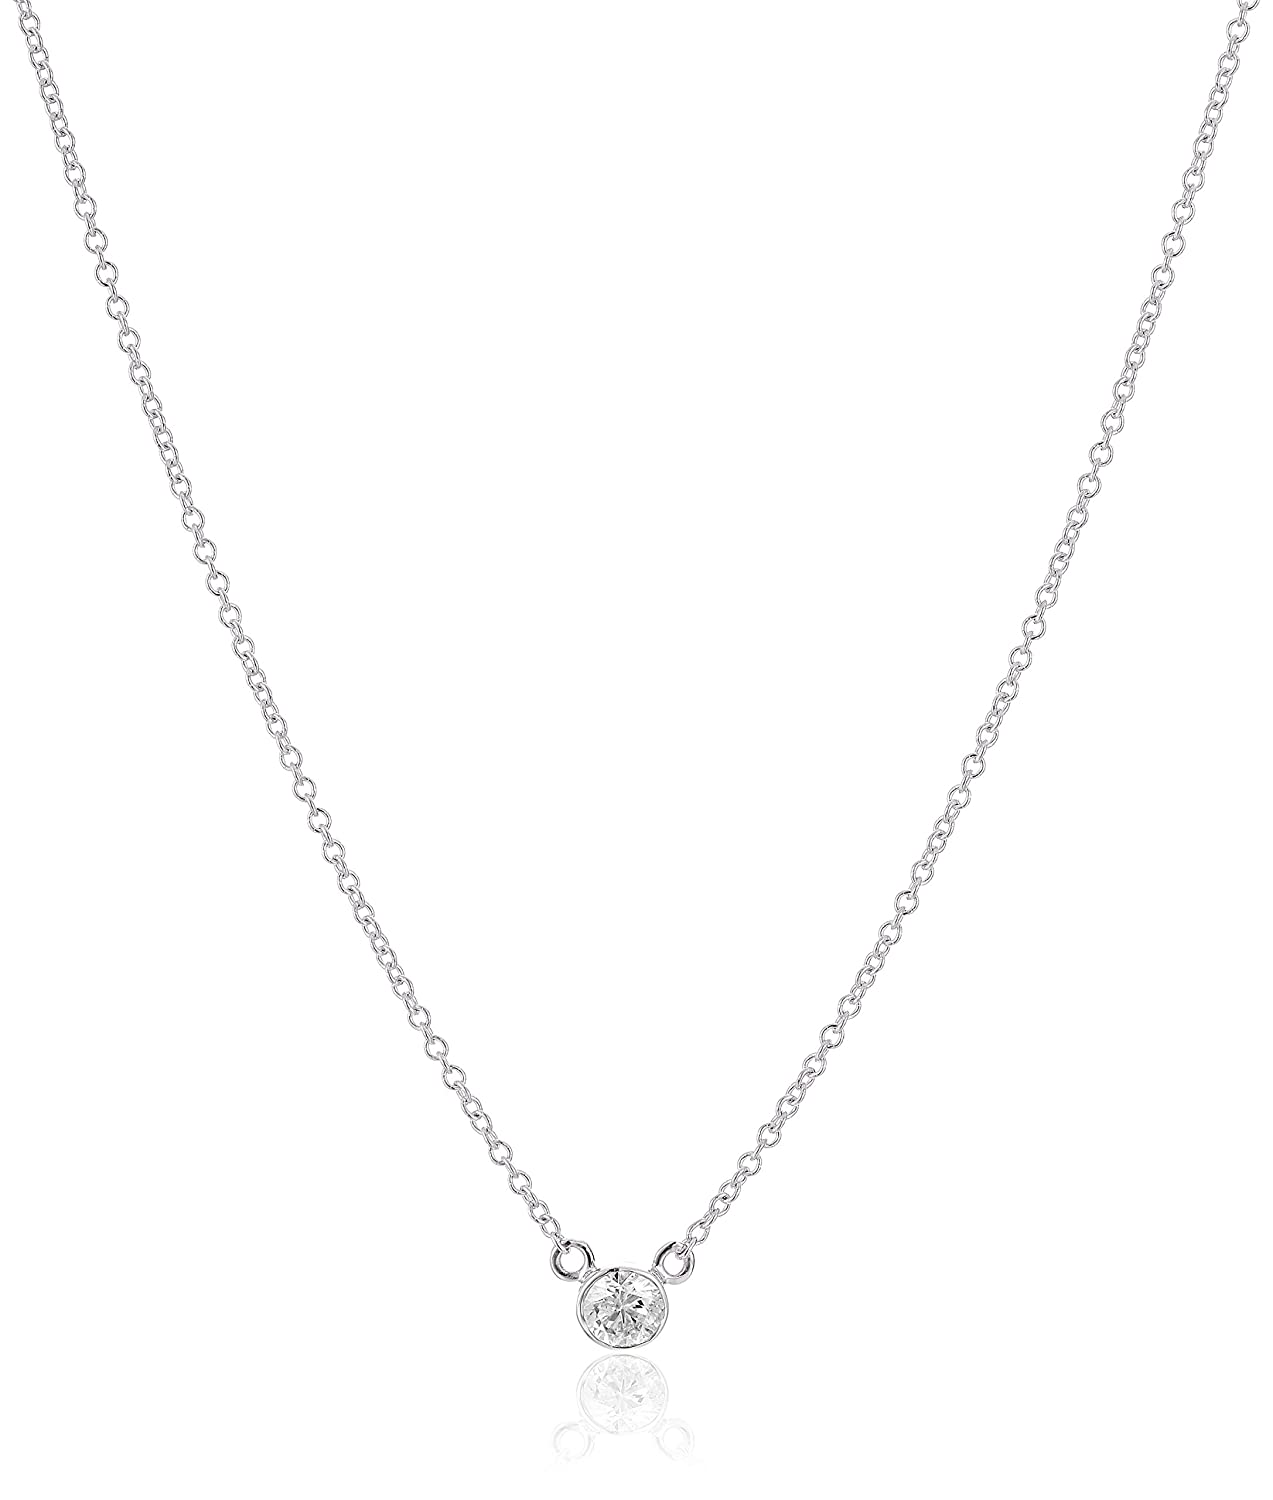 shaped diane necklace products necklaces cz zirconia gold set collections pear rose bezel cubic